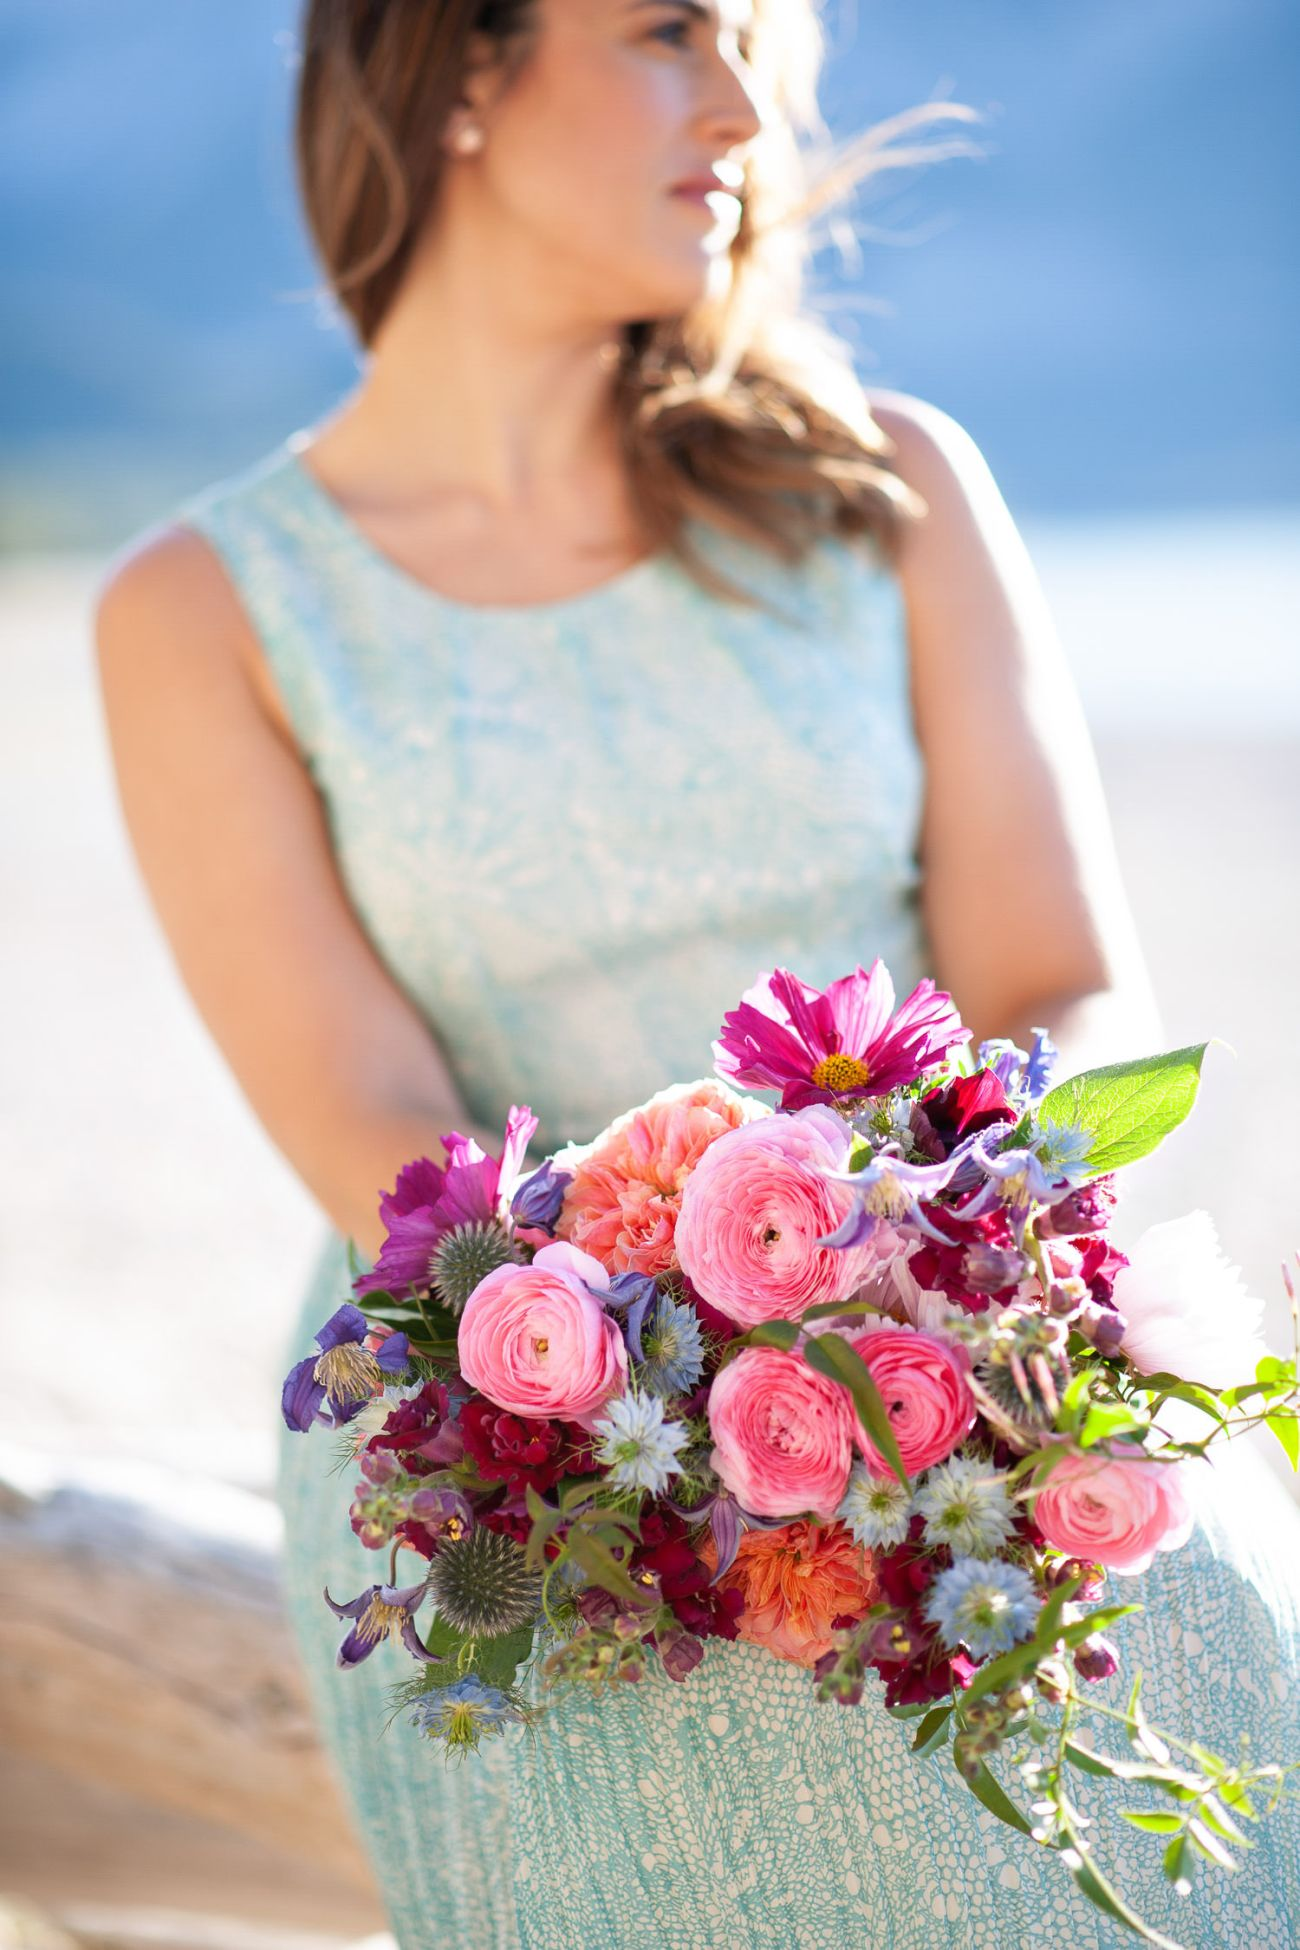 Flowers by Janie captured with a pretty summer bouquet by Tara Whittaker Photography